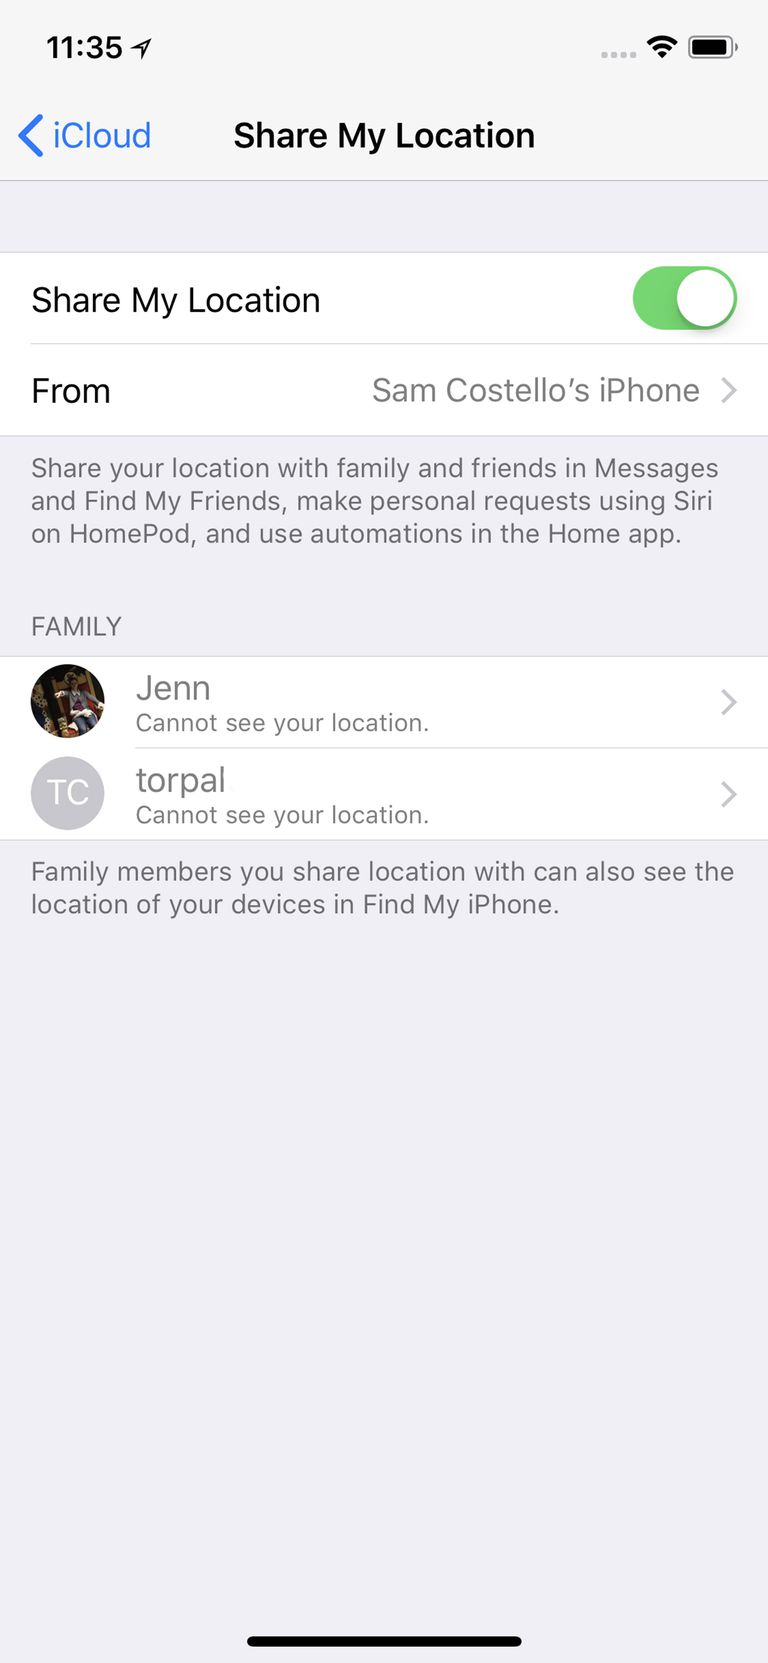 share location with iCloud